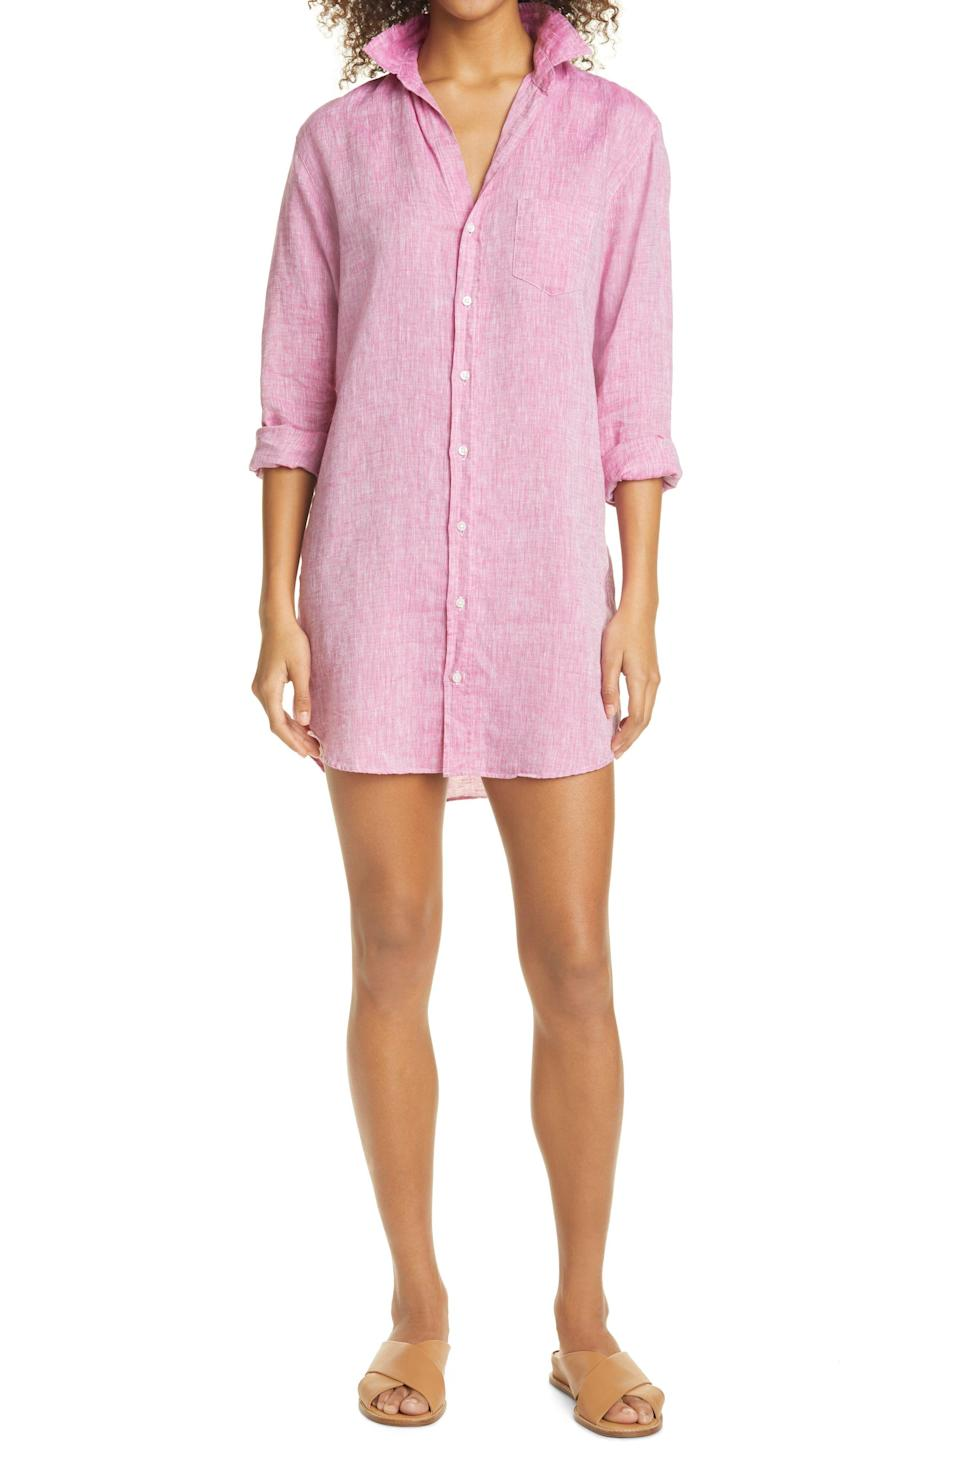 """<p><strong>FRANK AND EILEEN</strong></p><p>nordstrom.com</p><p><strong>$278.00</strong></p><p><a href=""""https://go.redirectingat.com?id=74968X1596630&url=https%3A%2F%2Fwww.nordstrom.com%2Fs%2Ffrank-eileen-mary-long-sleeve-linen-shirtdress%2F5803648&sref=https%3A%2F%2Fwww.townandcountrymag.com%2Fstyle%2Fg36049039%2Fbest-linen-dresses-women%2F"""" rel=""""nofollow noopener"""" target=""""_blank"""" data-ylk=""""slk:Shop Now"""" class=""""link rapid-noclick-resp"""">Shop Now</a></p><p>This shirtdress is the chicest cover-up we've seen. Plus the long sleeves protect from the sun while keeping you cool. </p>"""